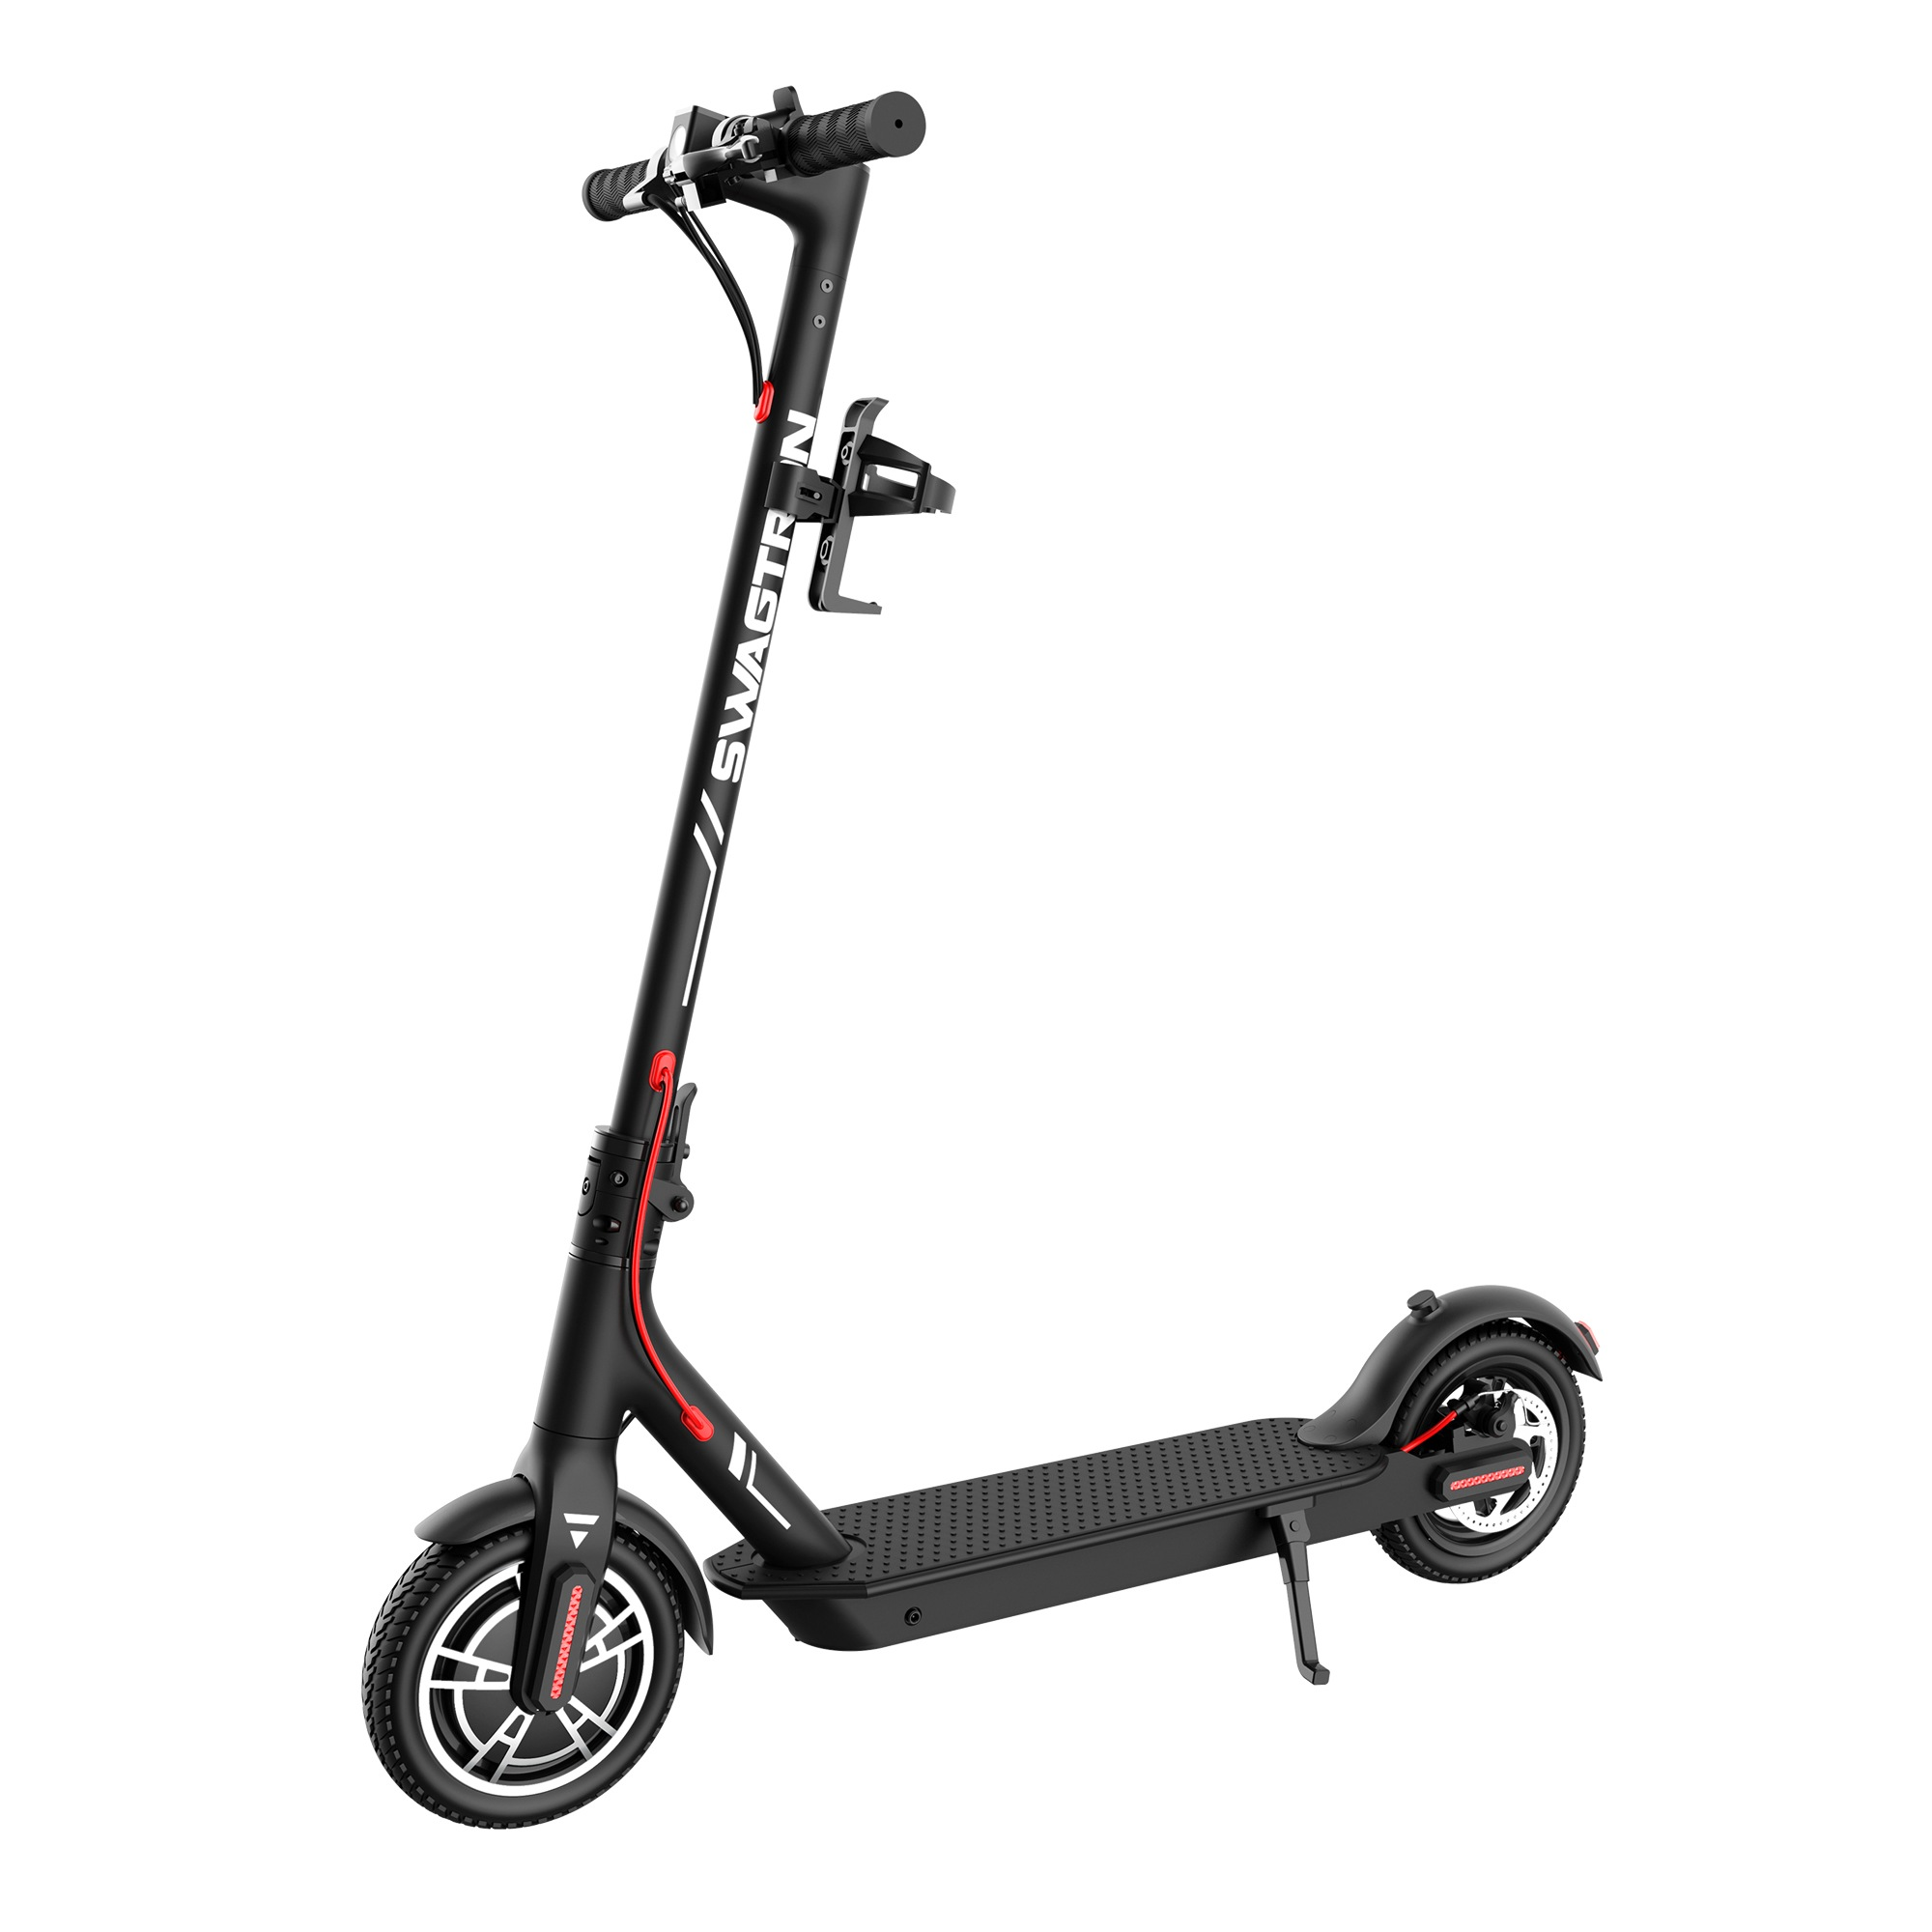 Swagger 5 Boost scooter